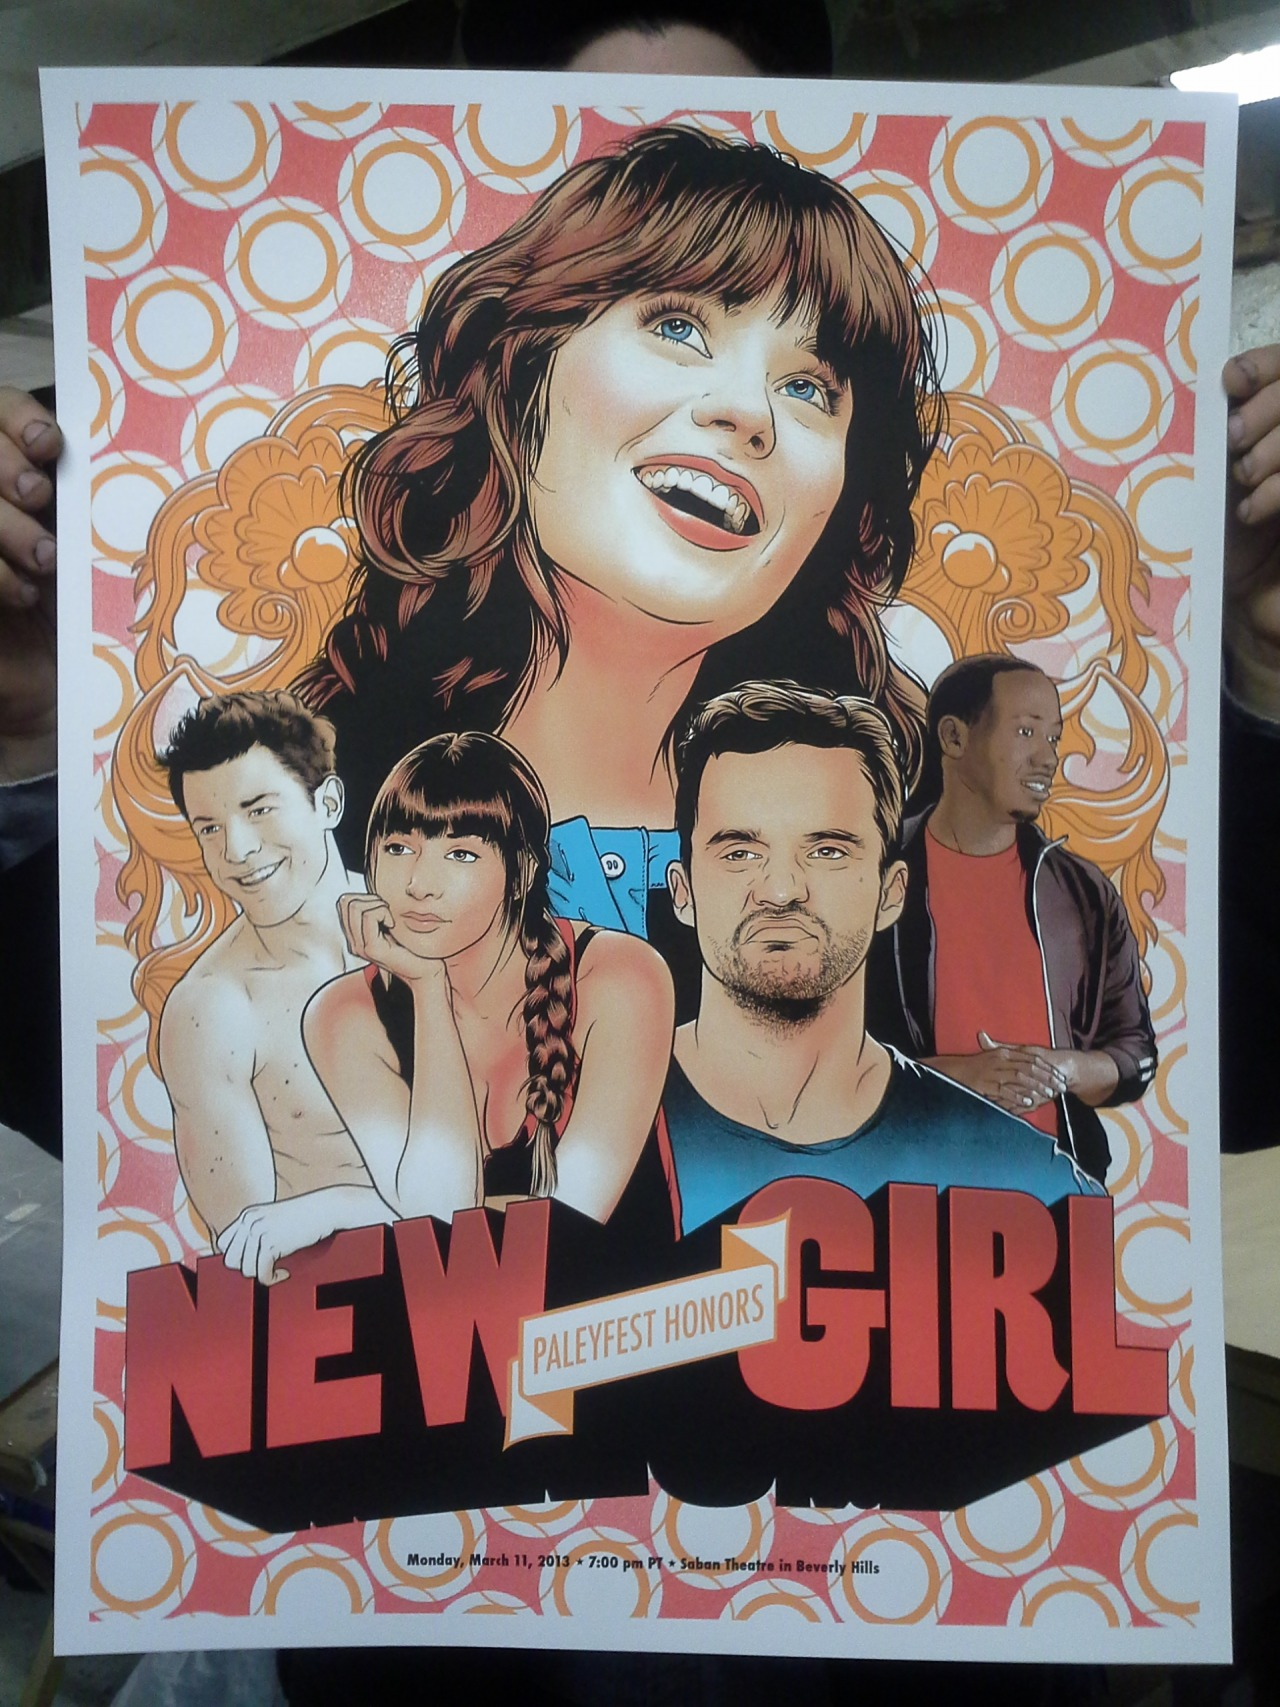 """NEW GIRL"" BY JOSHUA BUDICH FOR GALLERY 1988 AND PALEYFEST HONORS 2013 6 COLORS 18"" X 24"" COUGAR 100LB. COVER IN WHITE BUY IT HERE - http://nineteeneightyeight.com/products/joshua-budich-paleyfest-2013-honors-new-girl-print"